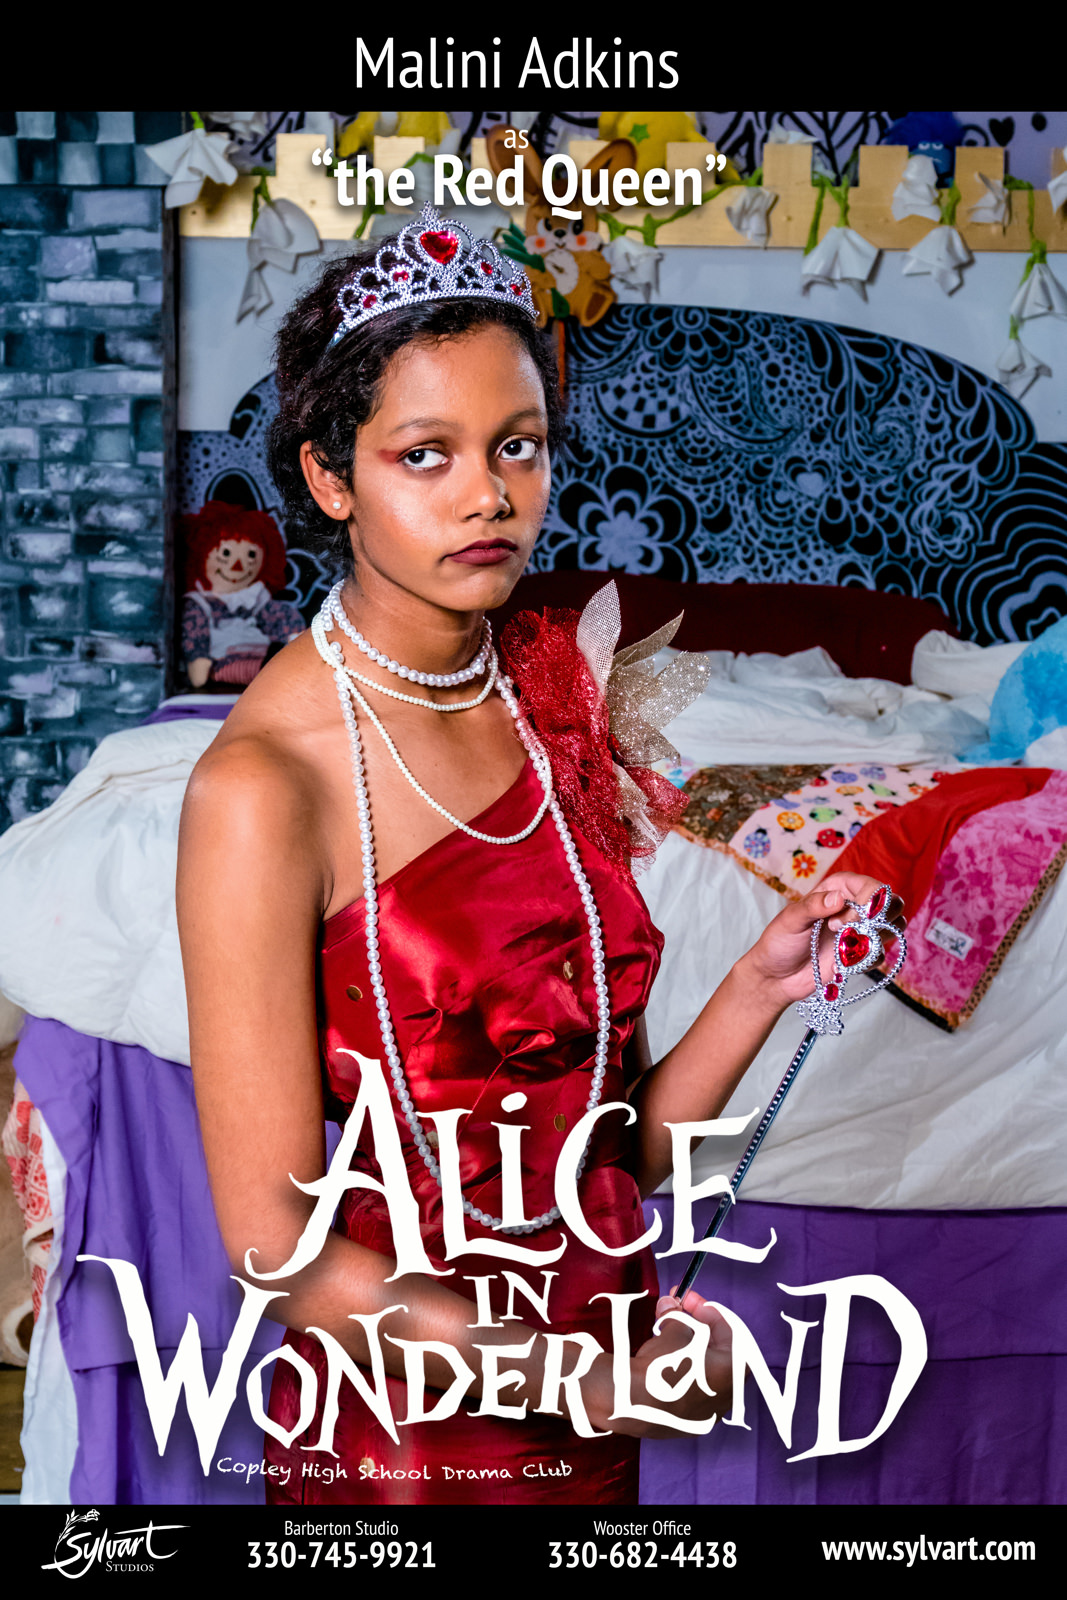 MALINI-Alice in Wonderland.JPG